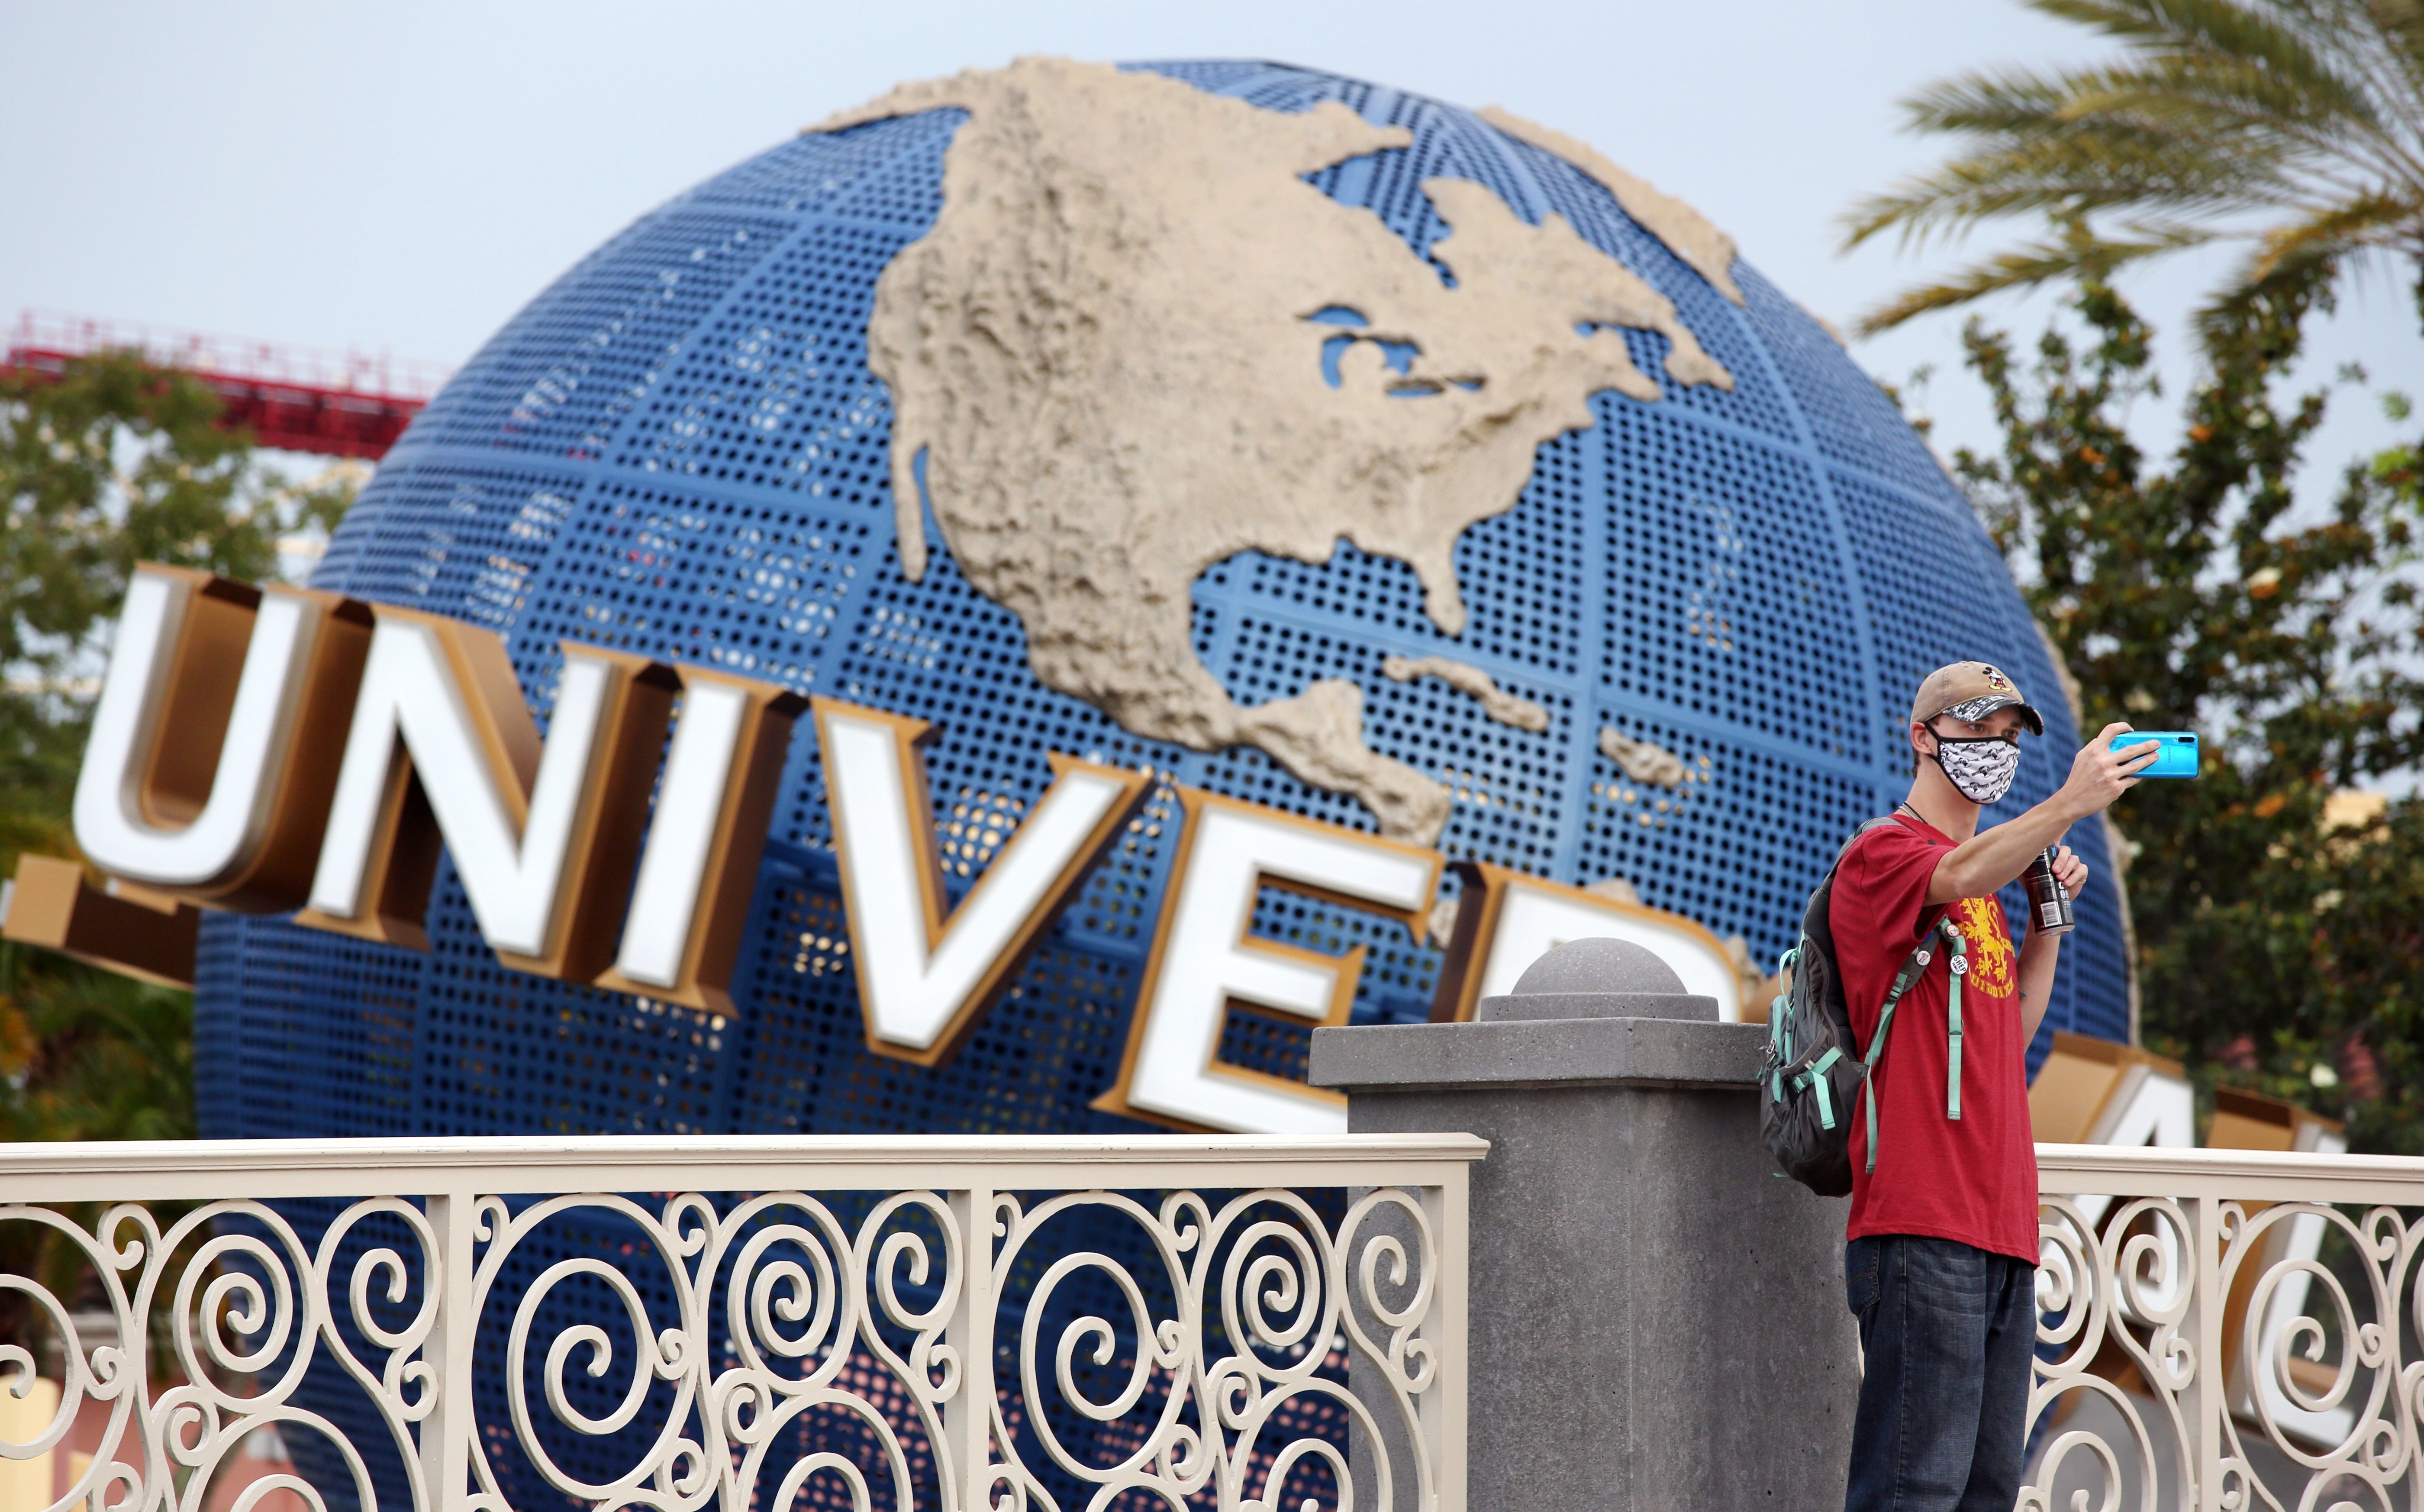 A visitor takes a selfie at Universal Studios theme park on June 5, the first day of the park's reopening during the coronavirus pandemic in Orlando, Fla.